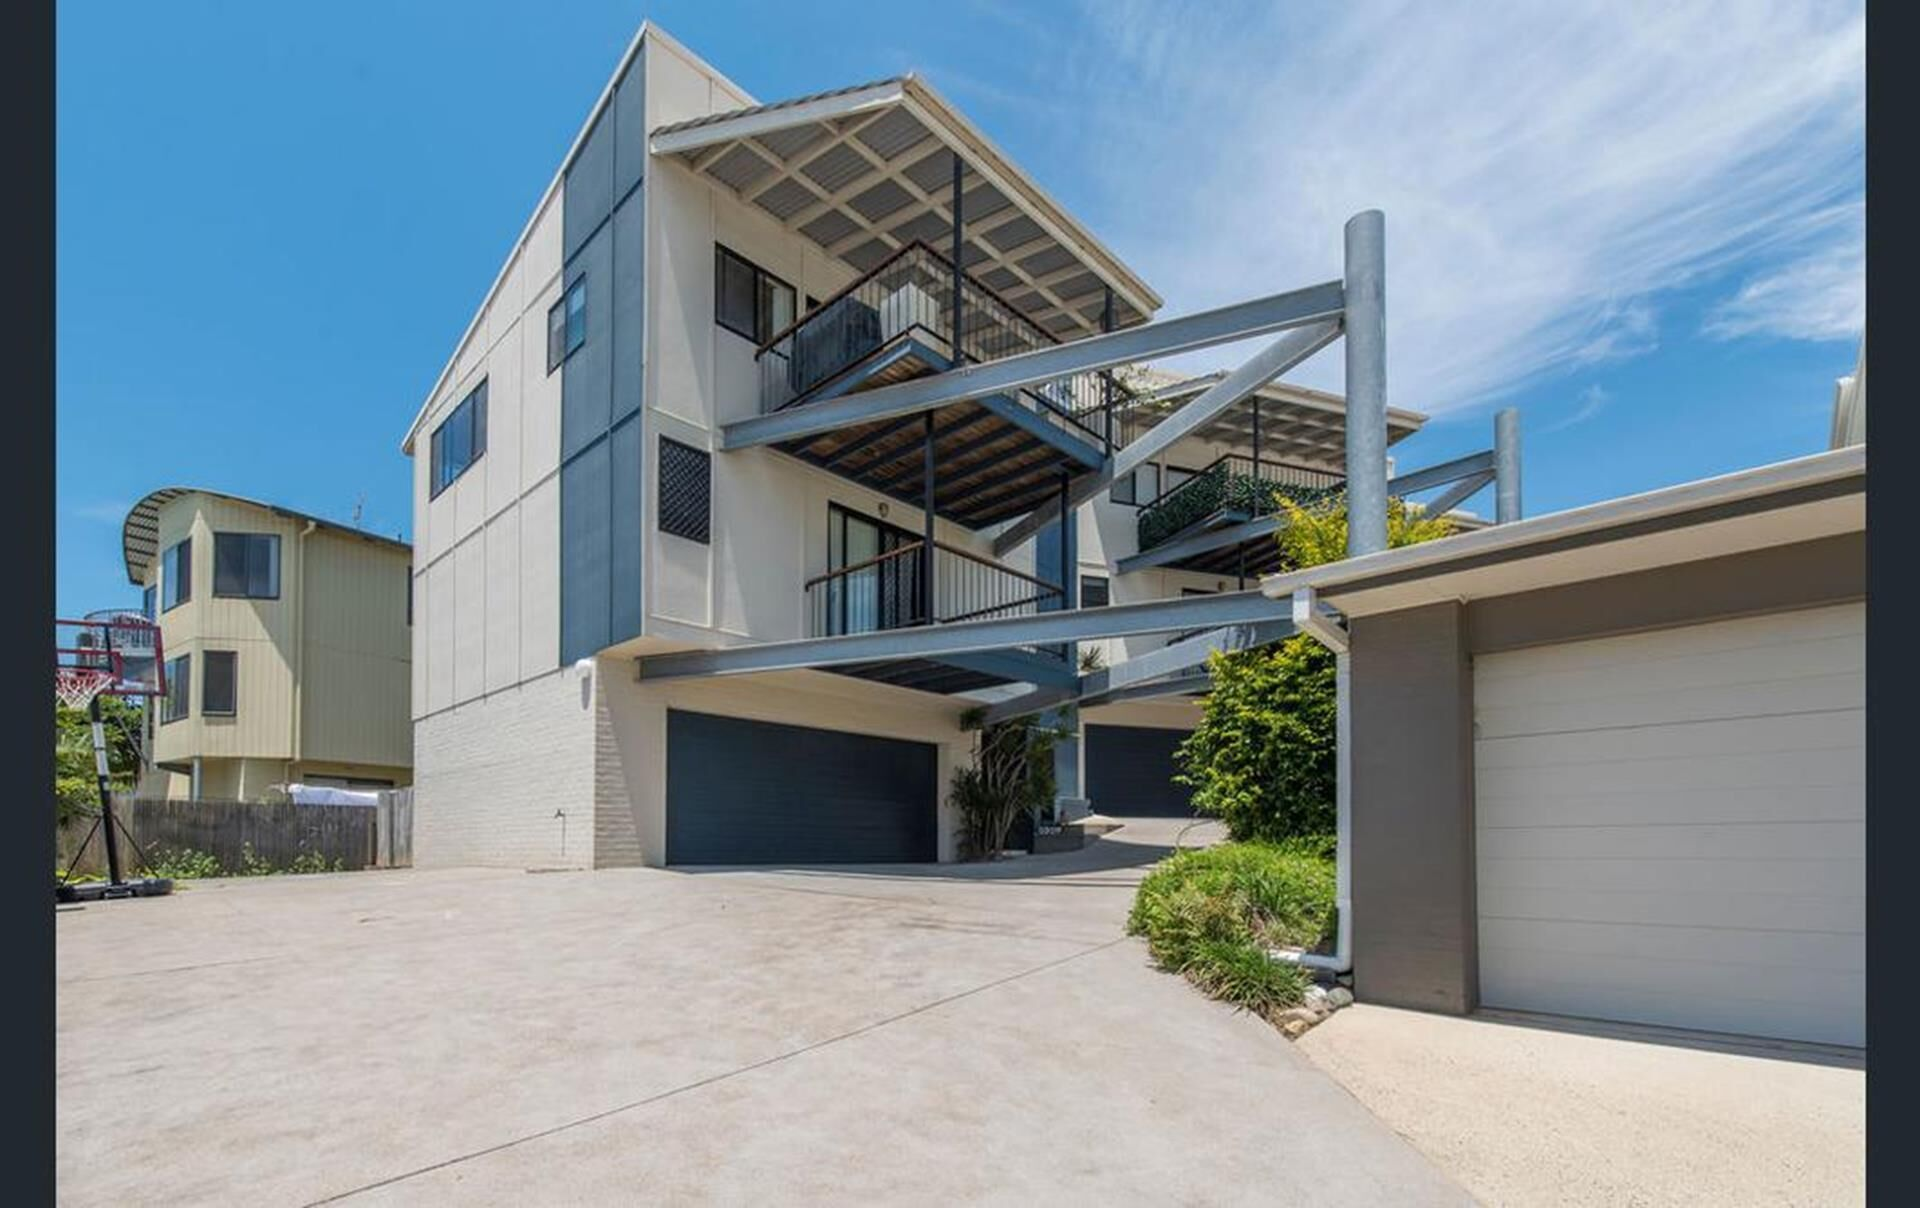 Townhouse on Coffs Harbour Jetty